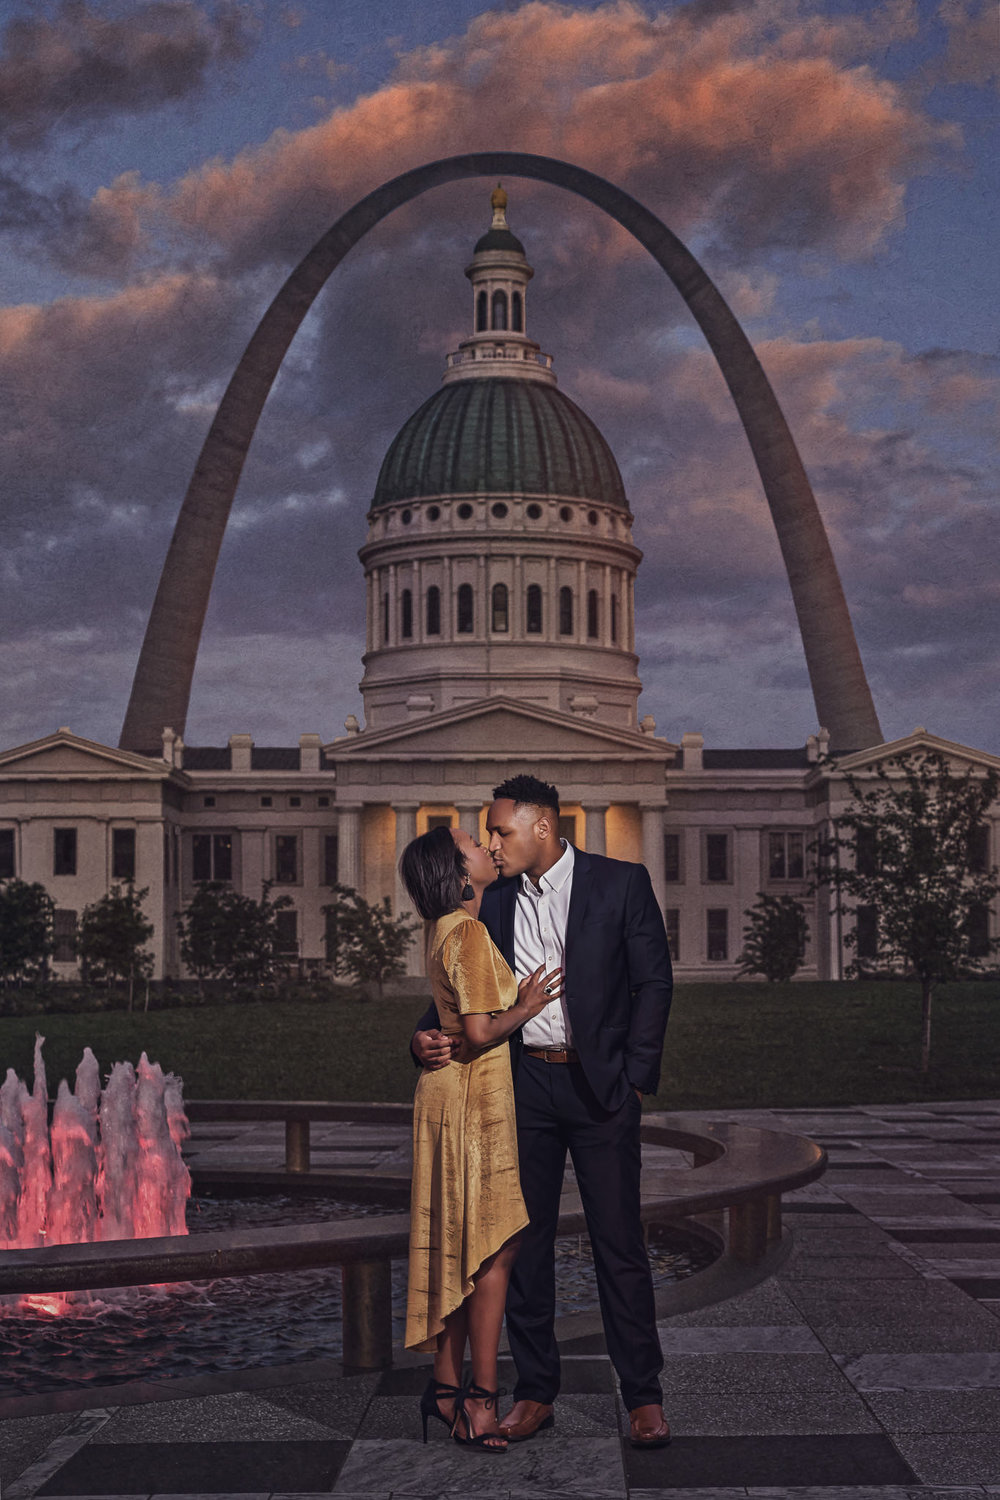 zachdalinphotography-st-louis-wedding-photographer-6.jpg